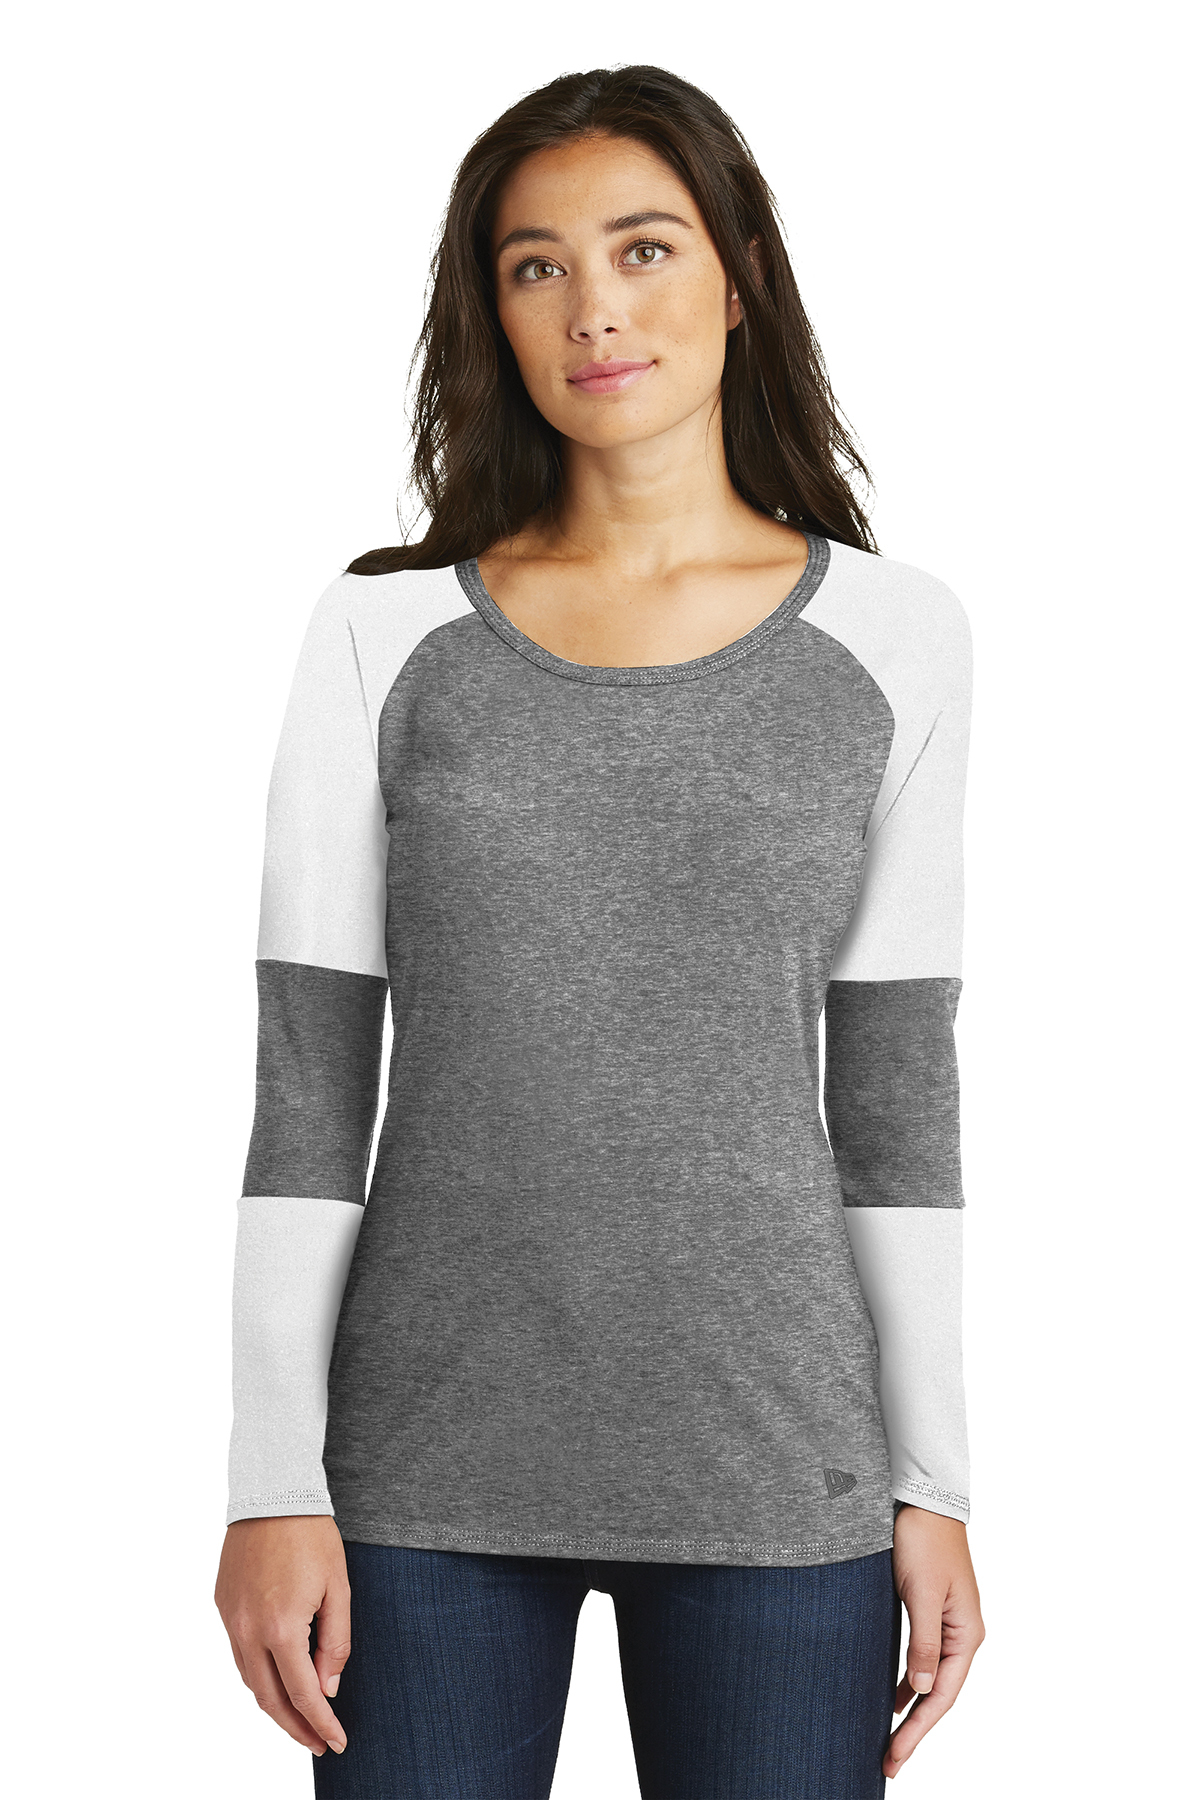 New Era LNEA132 - Ladies Tri-Blend Performance Baseball Tee